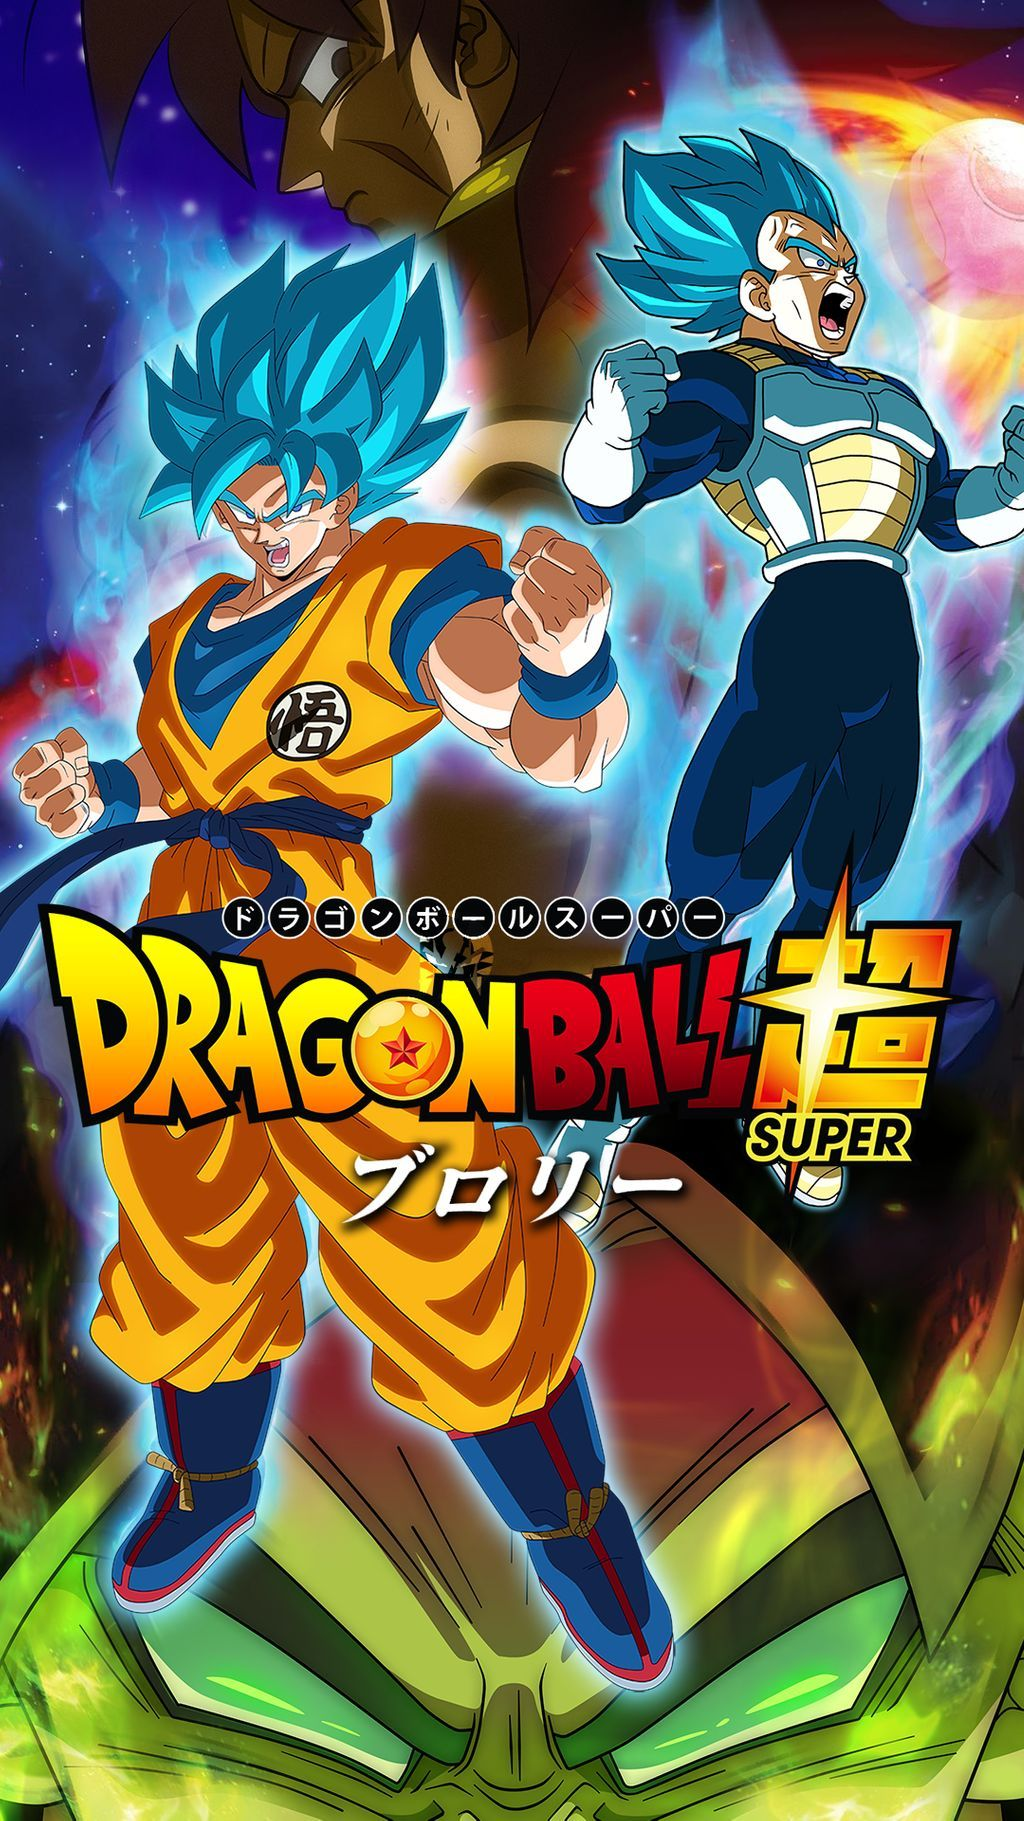 Dragon Ball Super Broly Hd Mobile Wallpaper By Davidmaxsteinbach On Deviantart Dragon Ball Super Wallpapers Dragon Ball Super Dragon Ball Super Manga